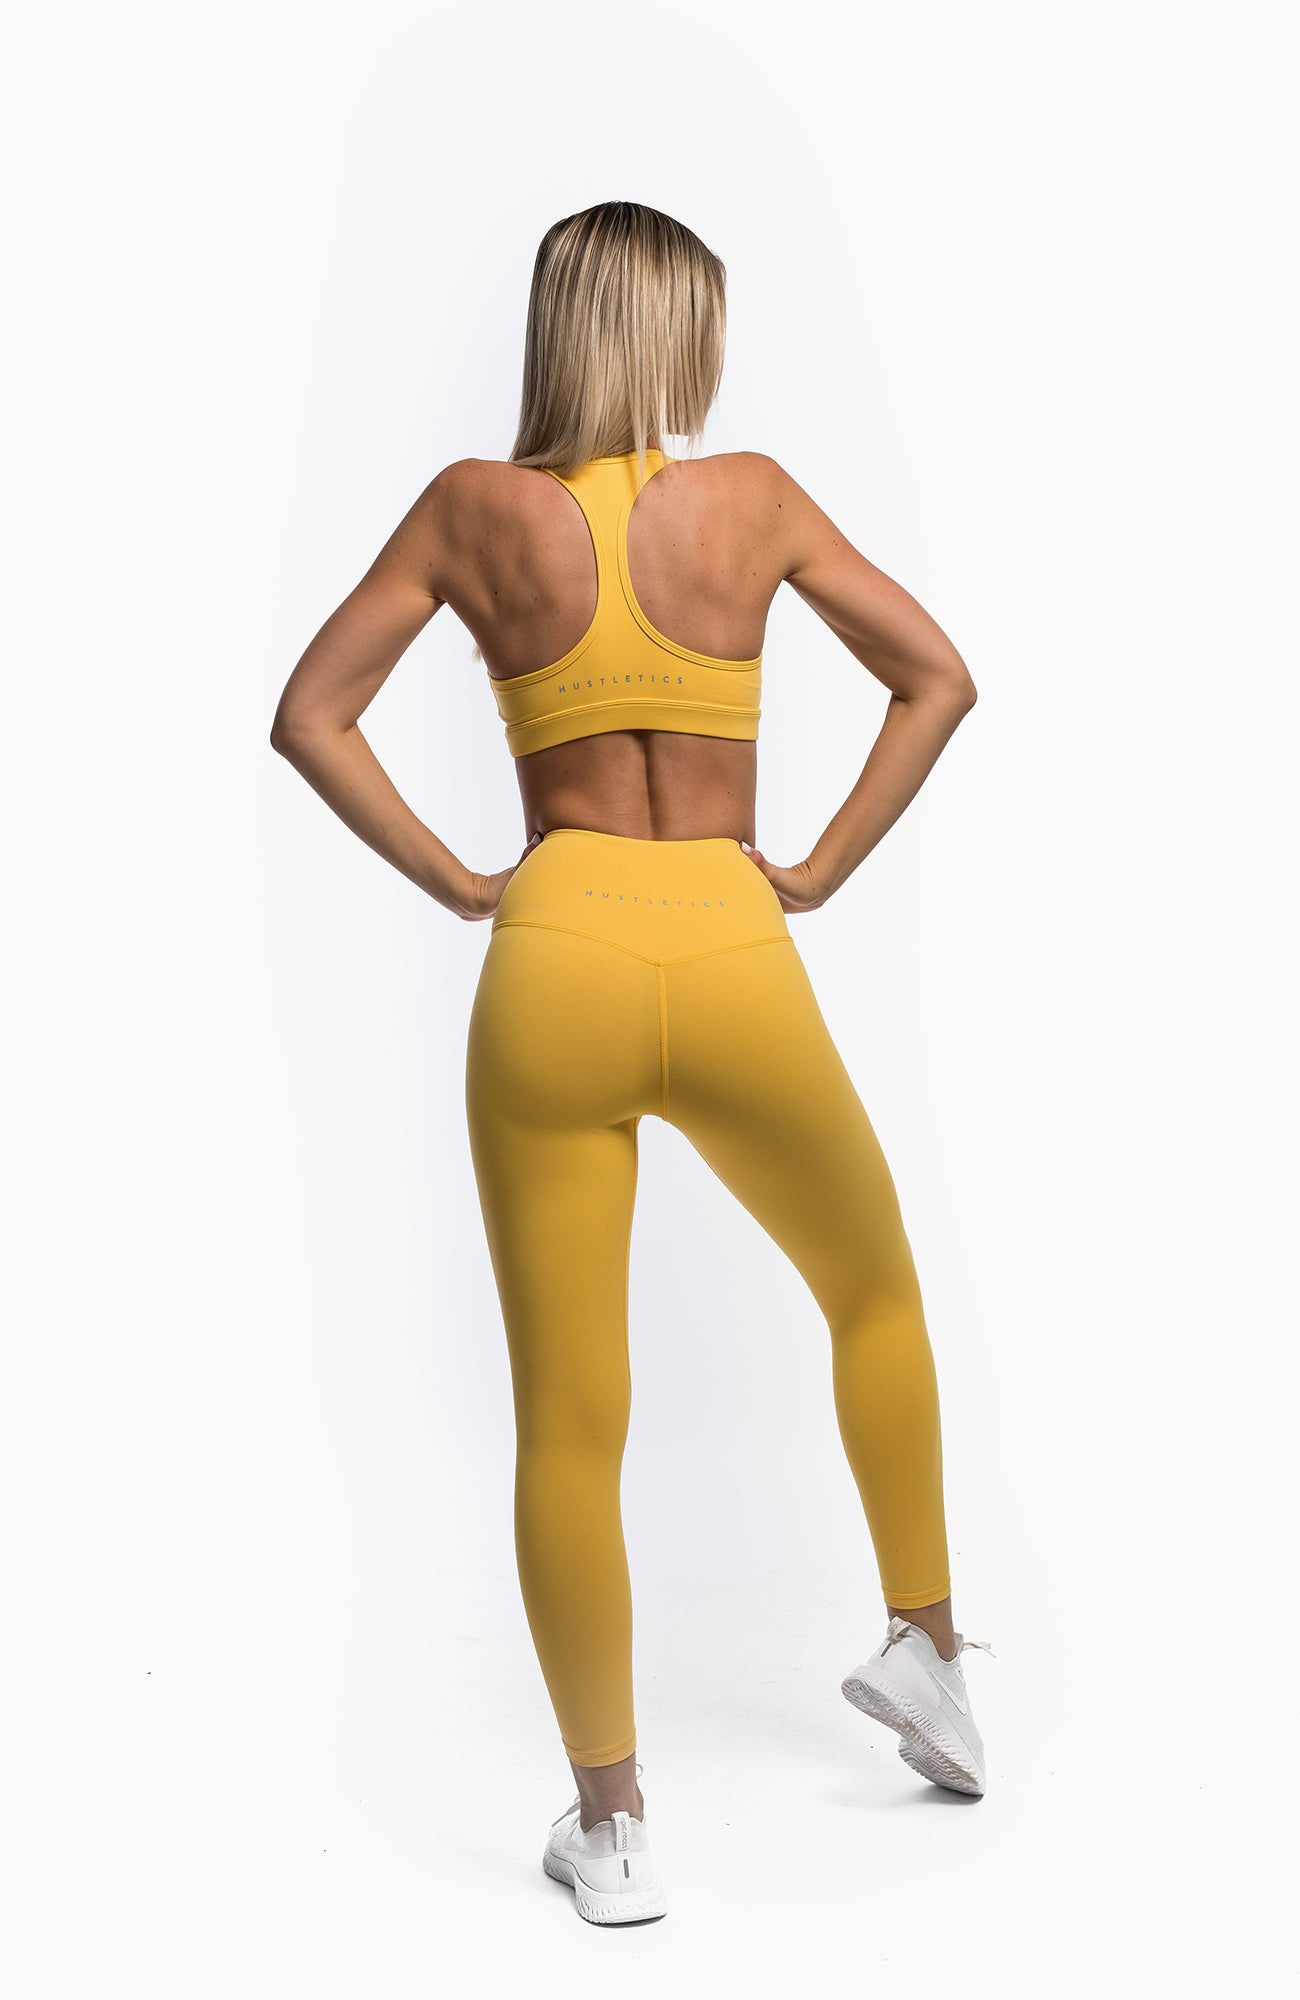 FLOW LEGGINGS - BUMBLEBEE - hustletics.com